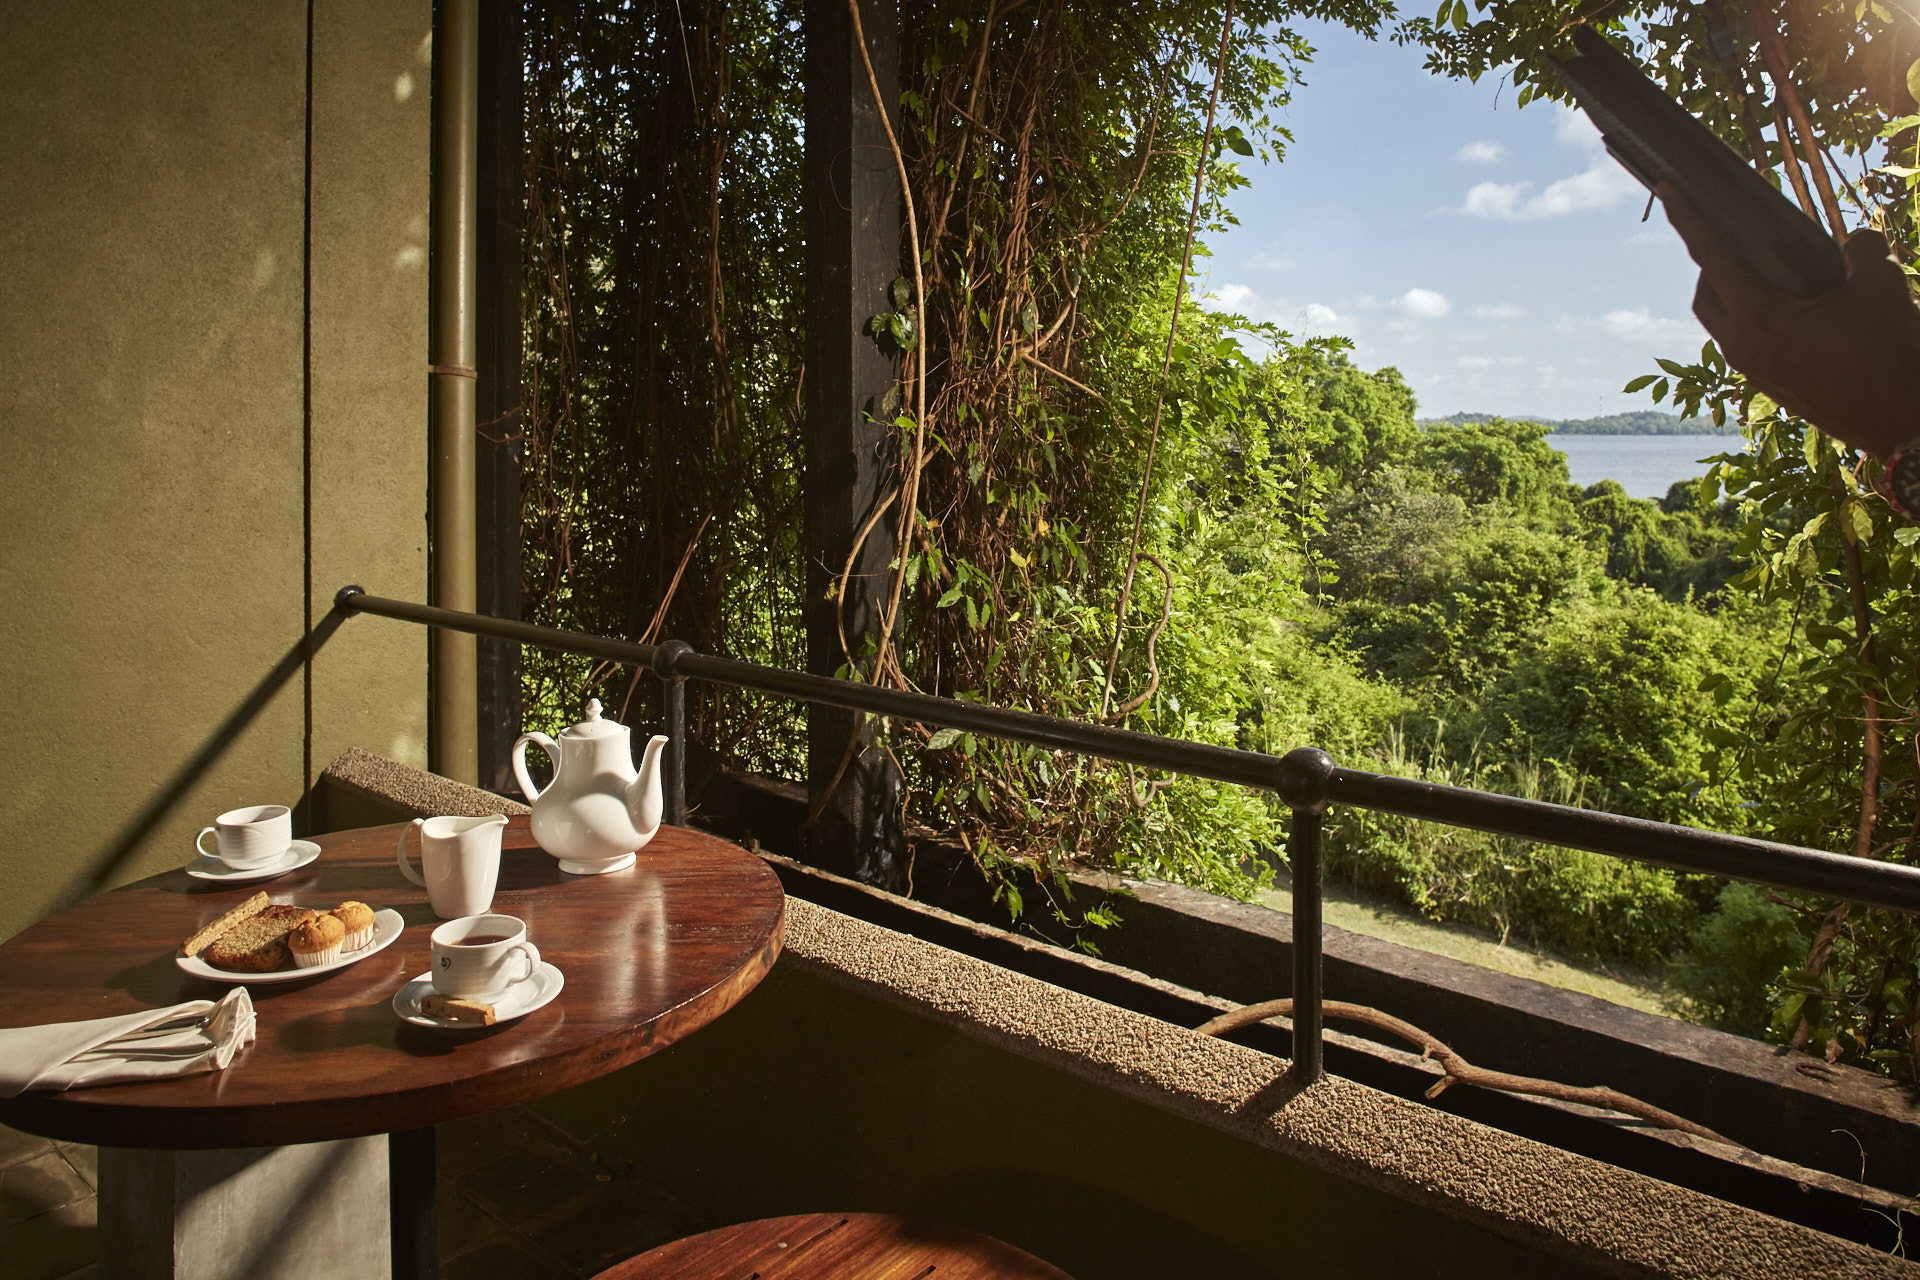 Luxury Balcony at Heritance Kandalama with a view